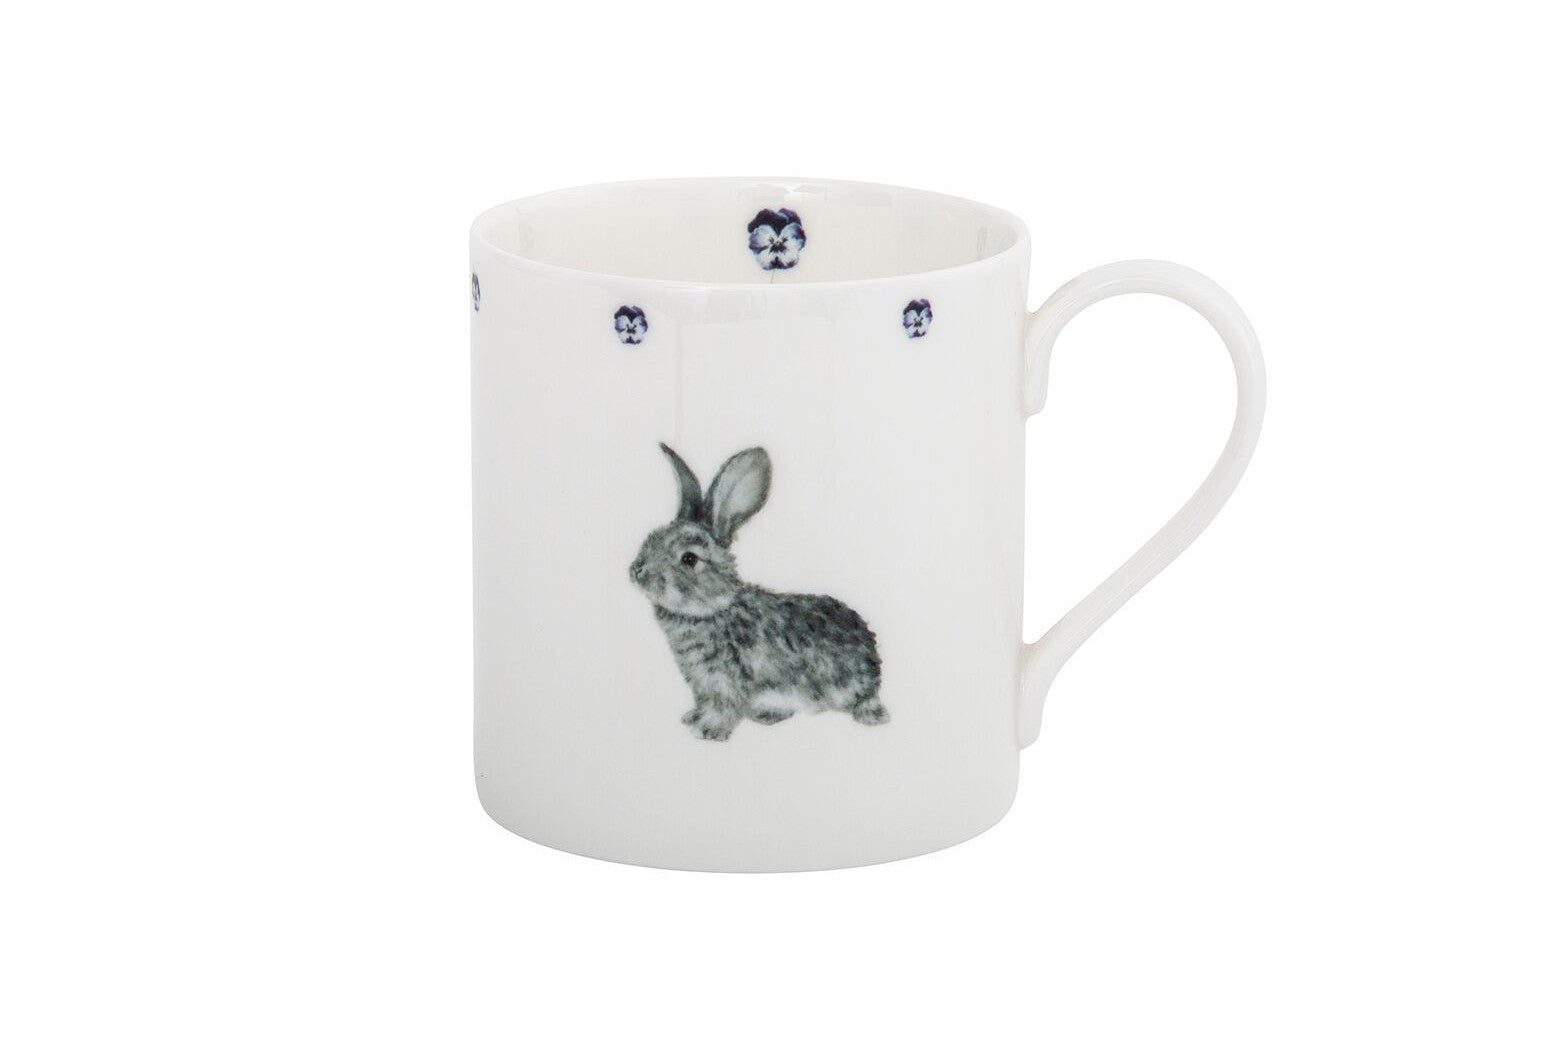 Daisy Rabbit and Pansy Bone China Mug